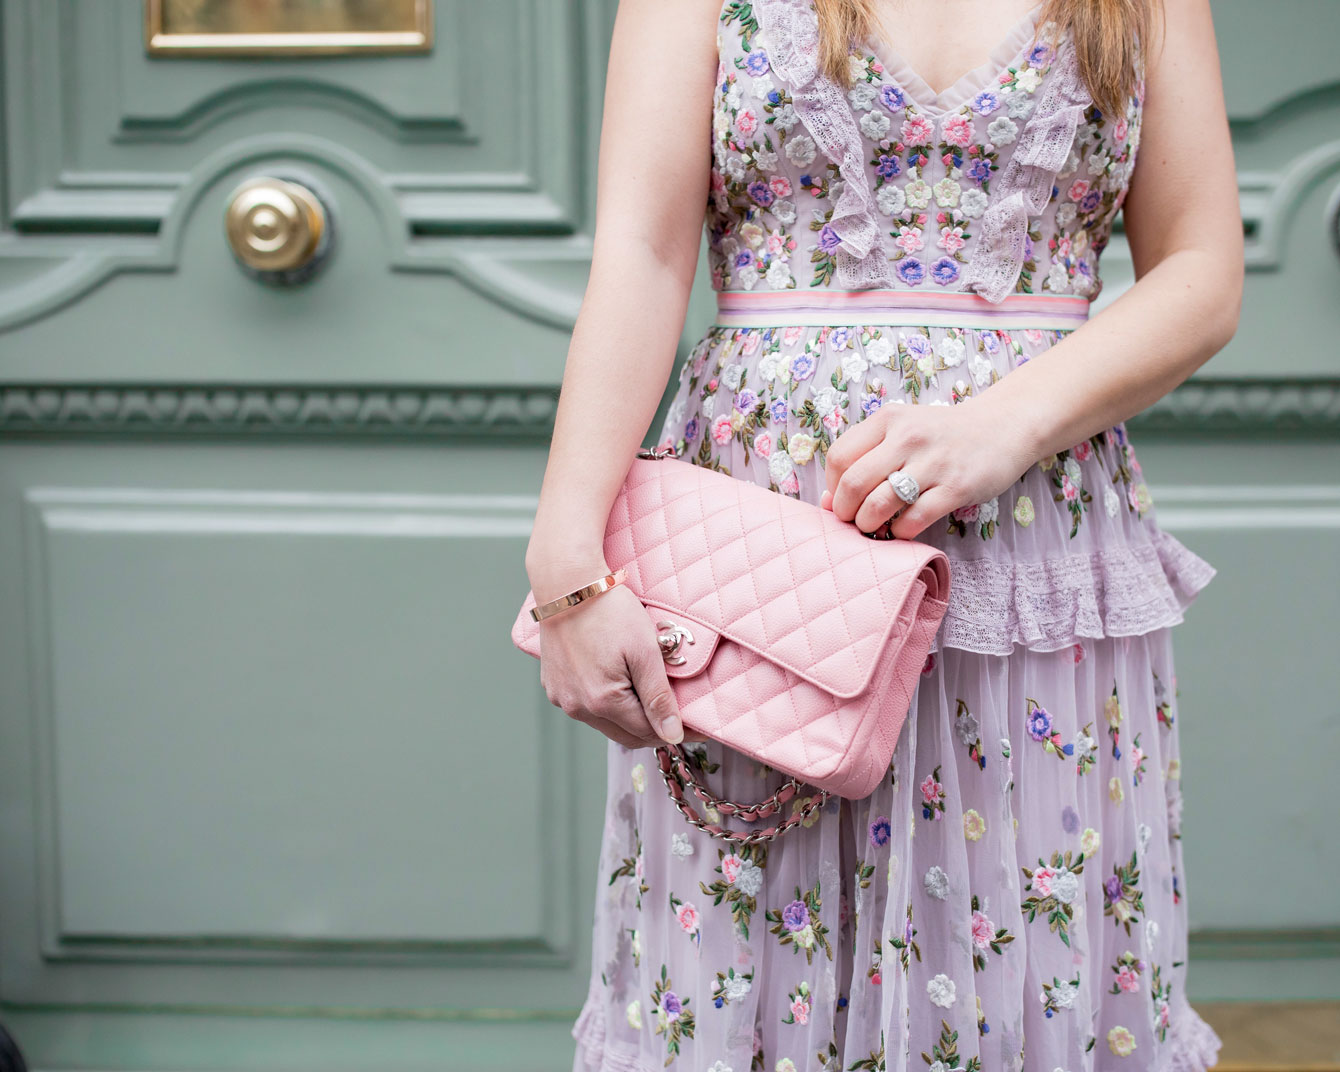 Chanel Classic Pink Chain Flap Bag